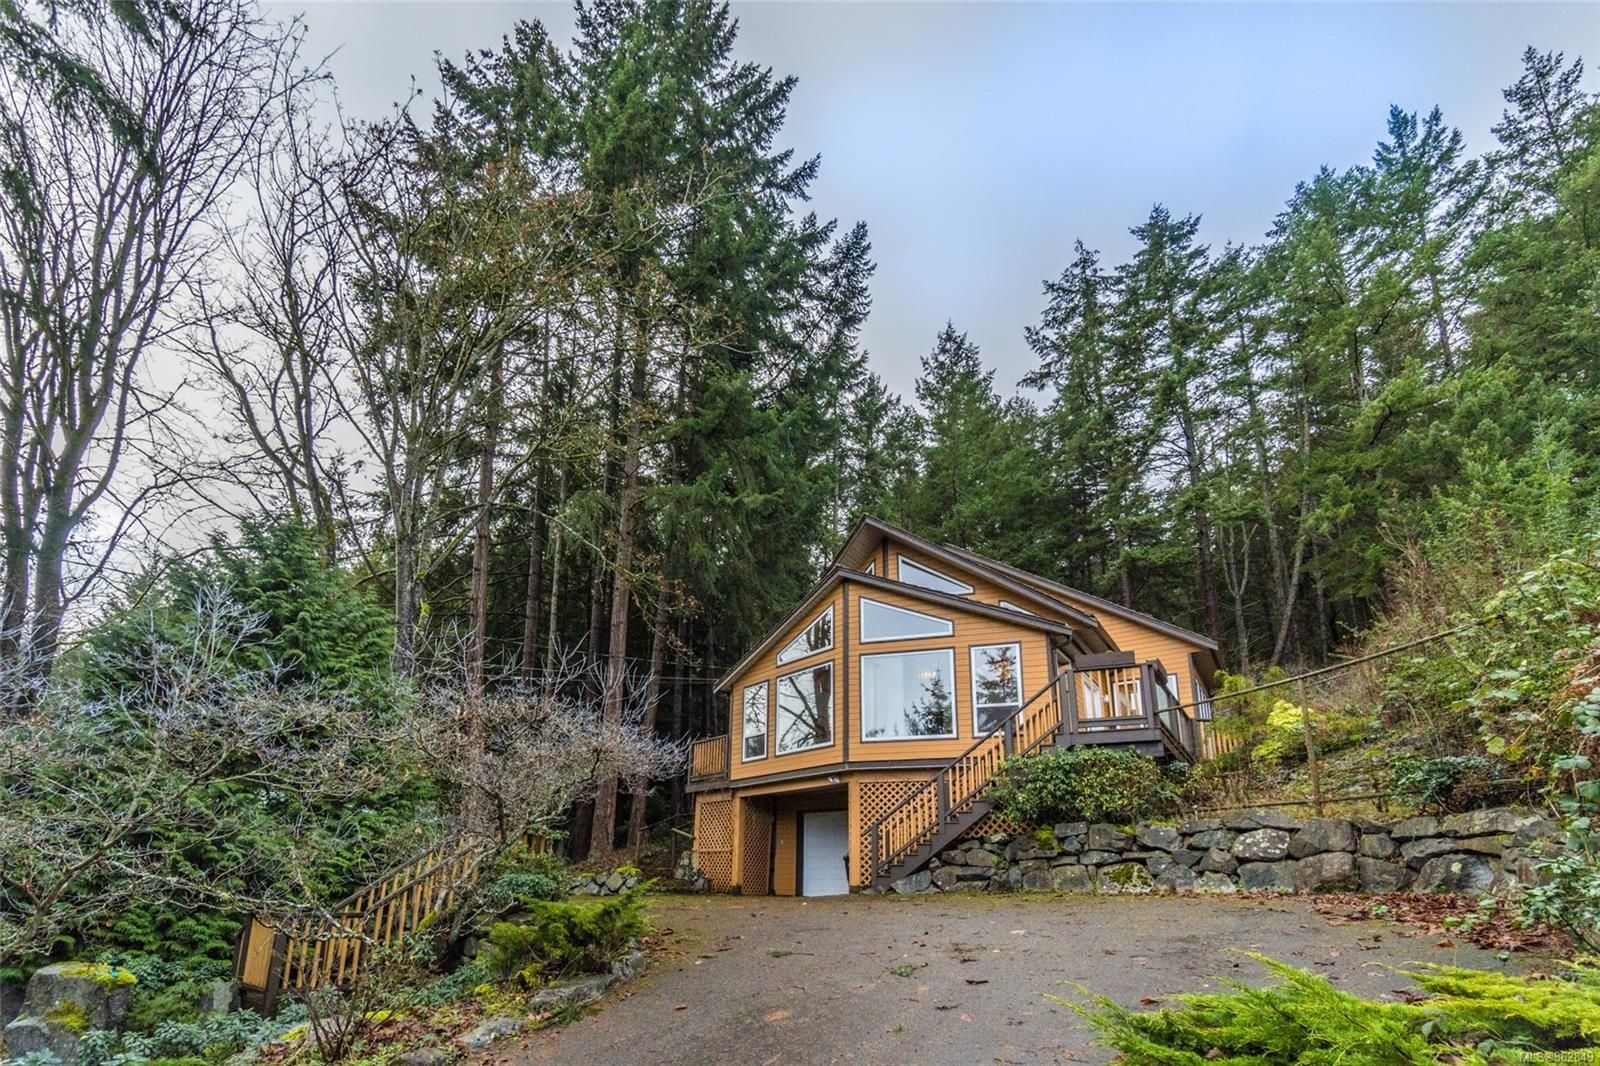 Main Photo: 2932 Dolphin Dr in : PQ Nanoose Residential for sale (Parksville/Qualicum)  : MLS®# 862849